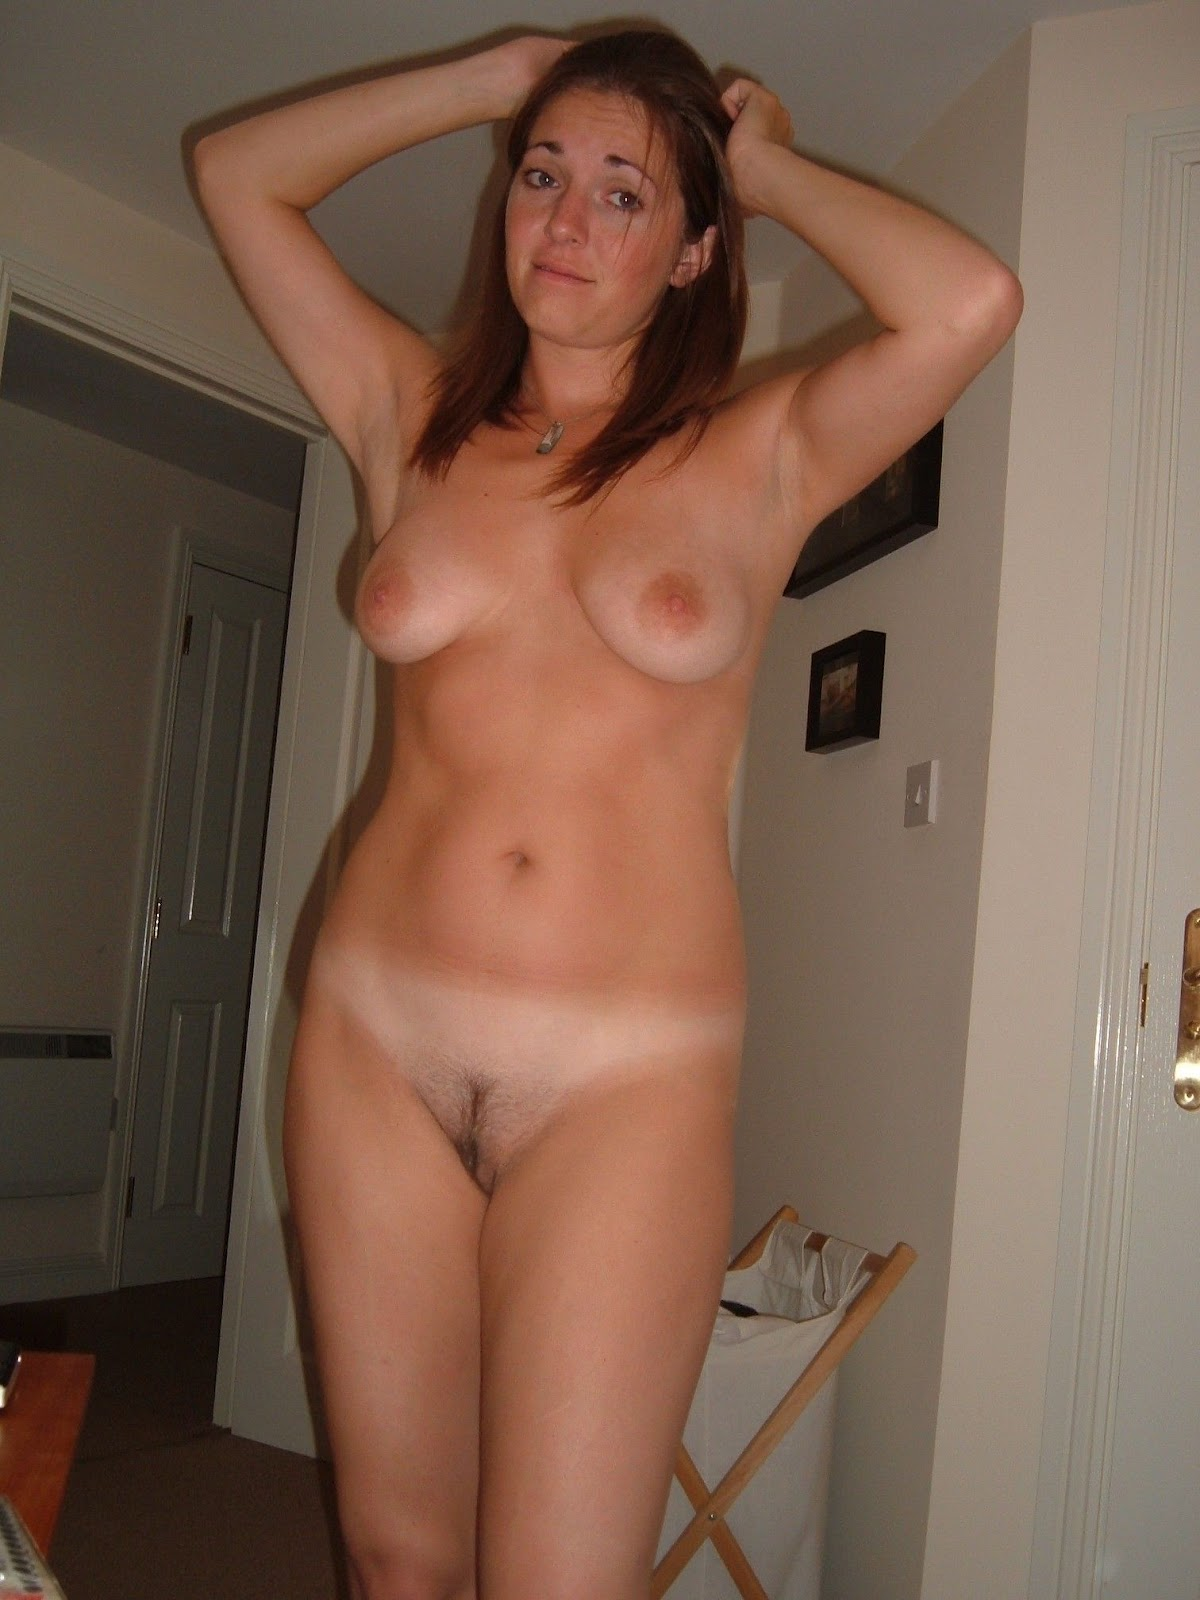 Real Naked Cellphone Pics Girls Caught Candid Videos